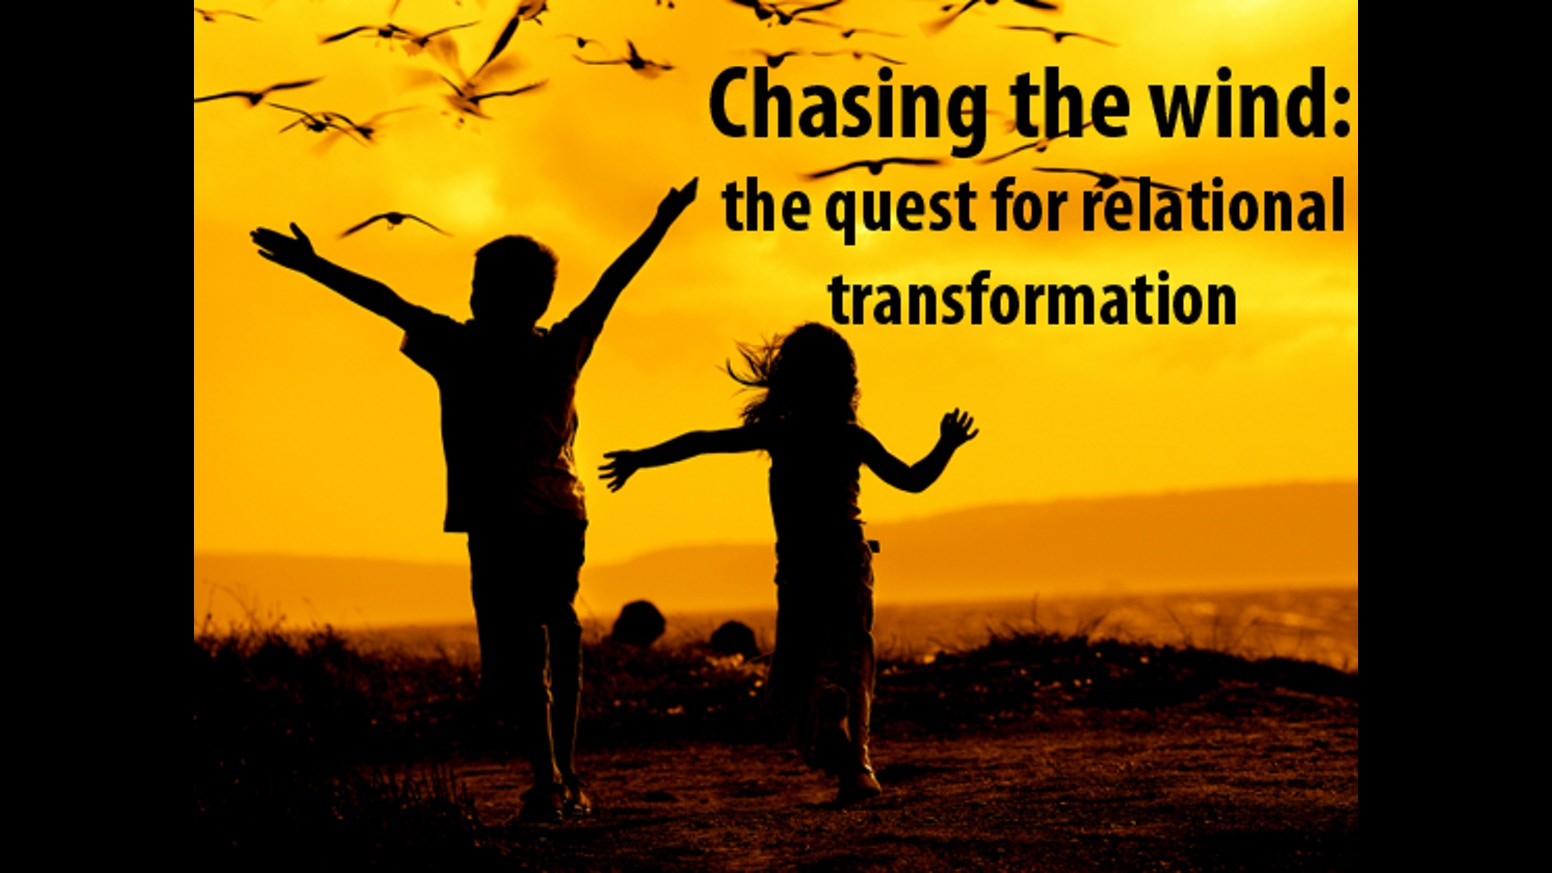 Chasing The Wind: The Quest For Relational Transformation